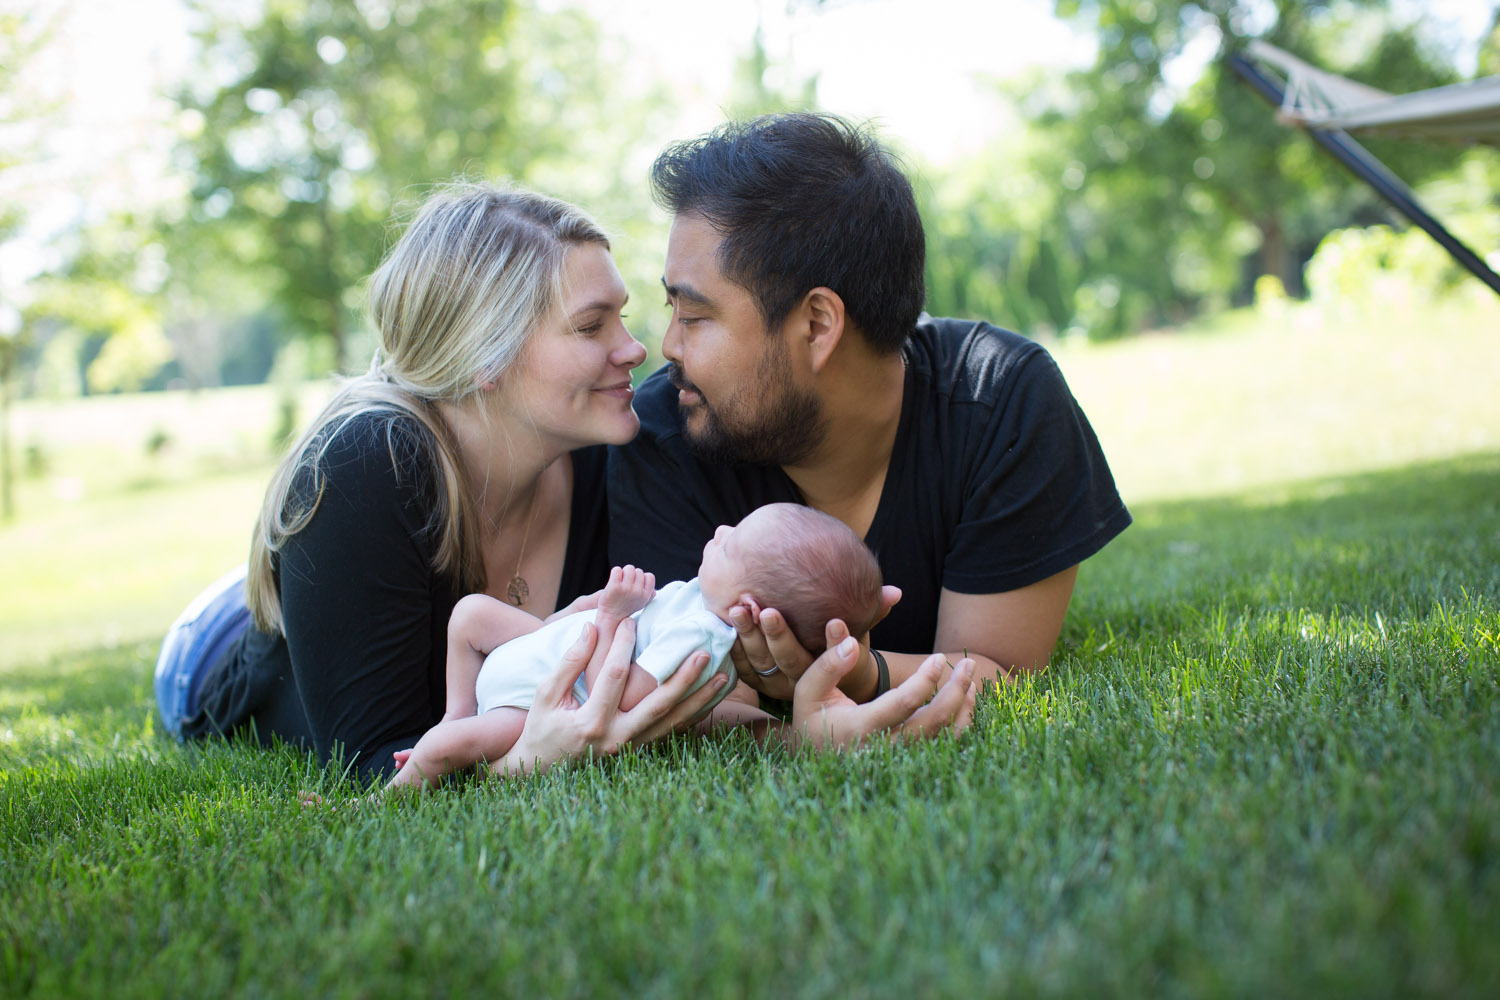 05-minnesota-in-home-newborn-lifestyle-photographer-new-parents-mom-dad-baby-boy-outside-green-grass-mahonen-photography.jpg